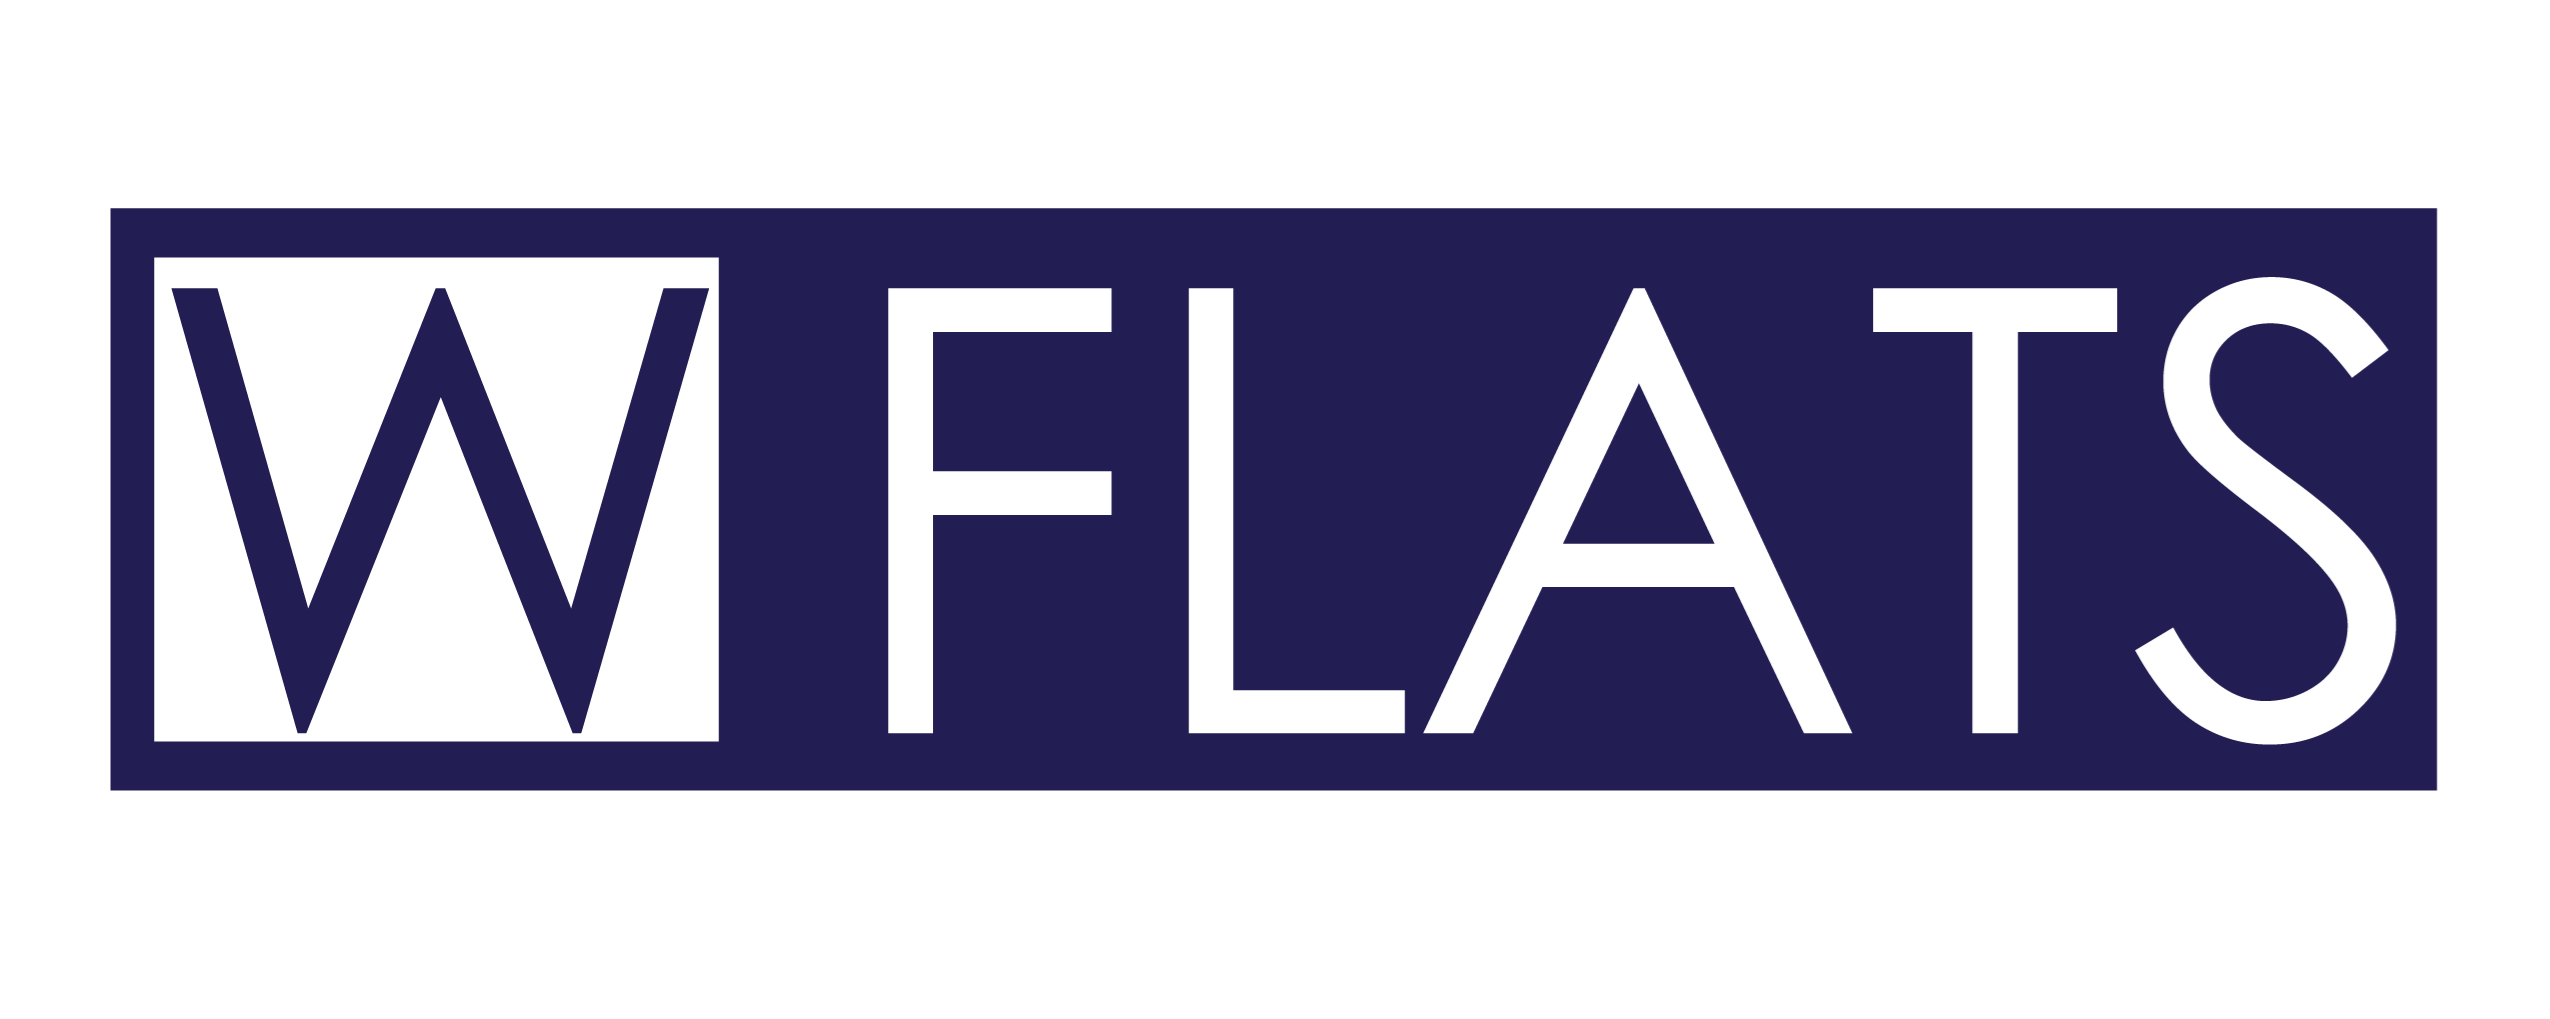 W Flats Apartments Property Logo 22